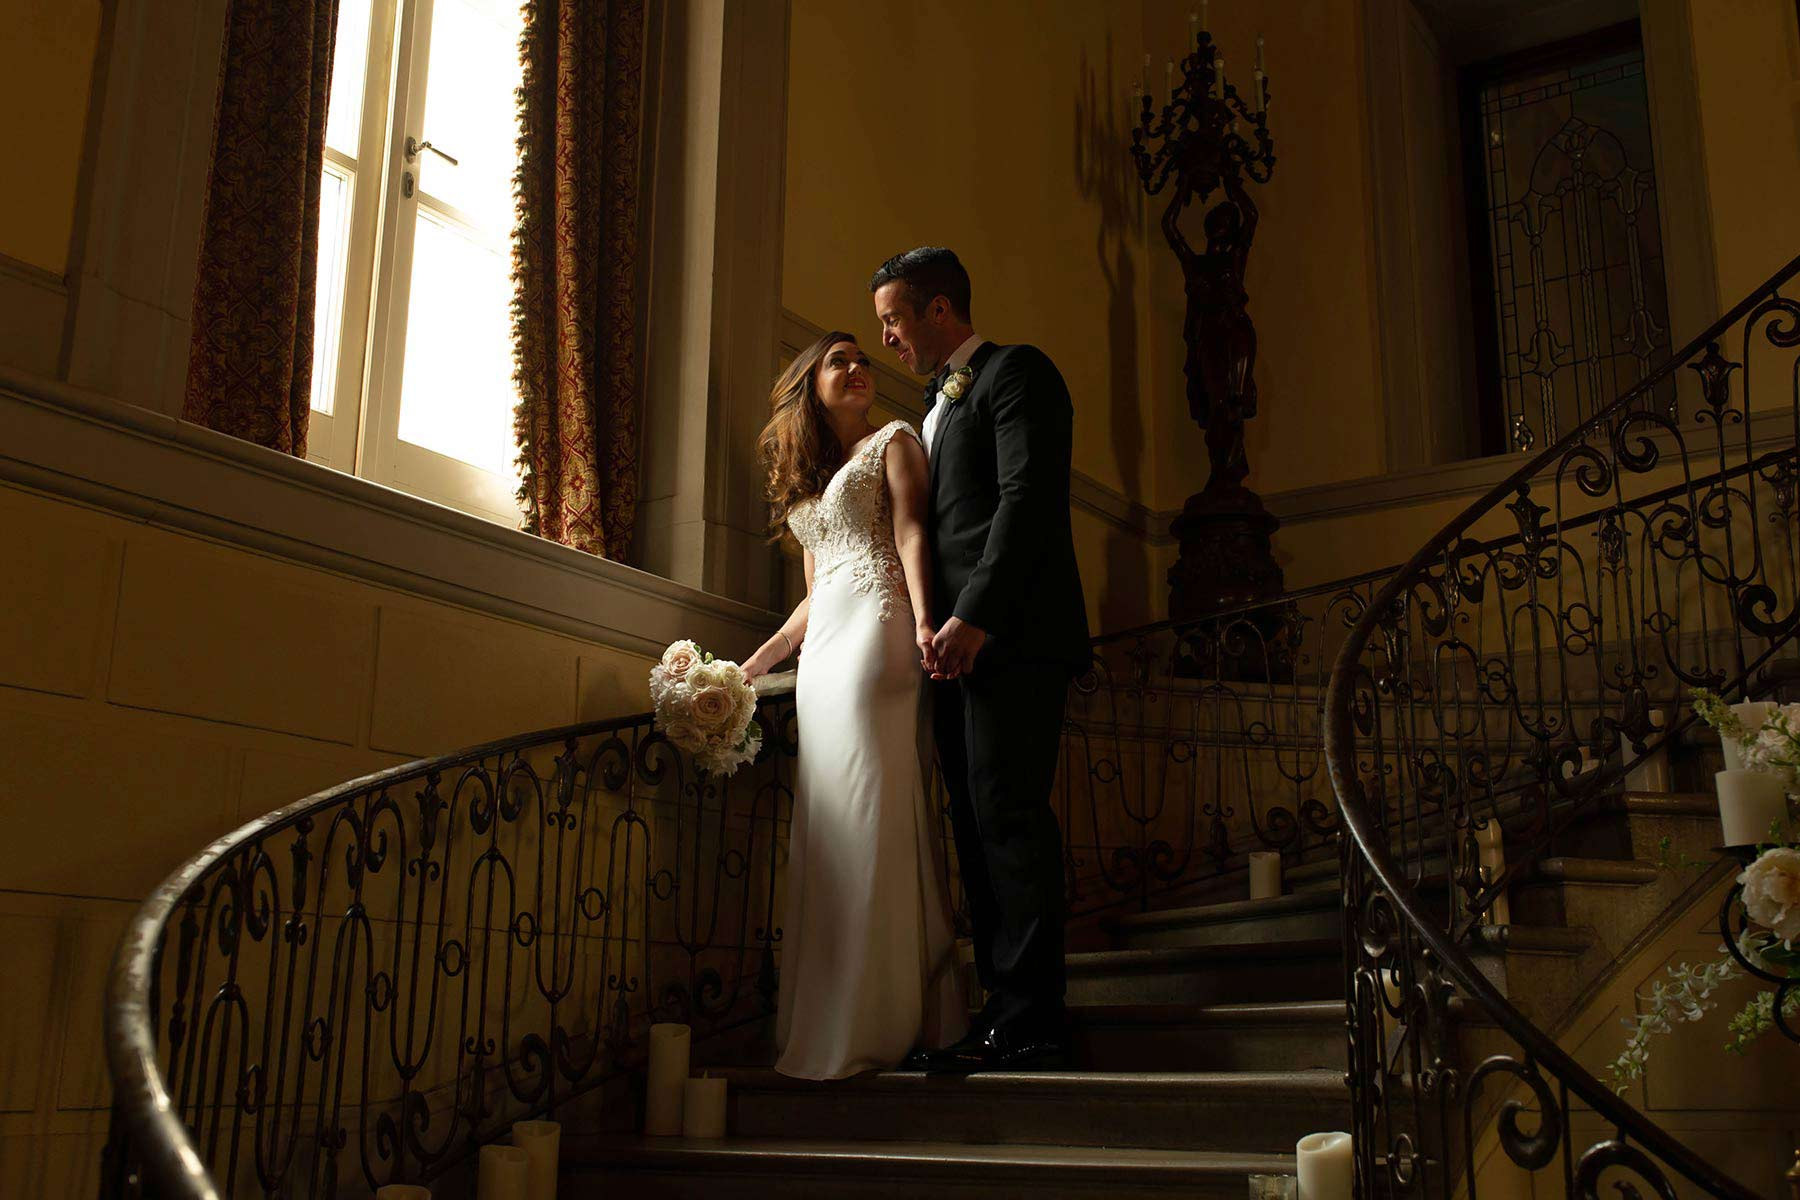 Married couple on stairs image